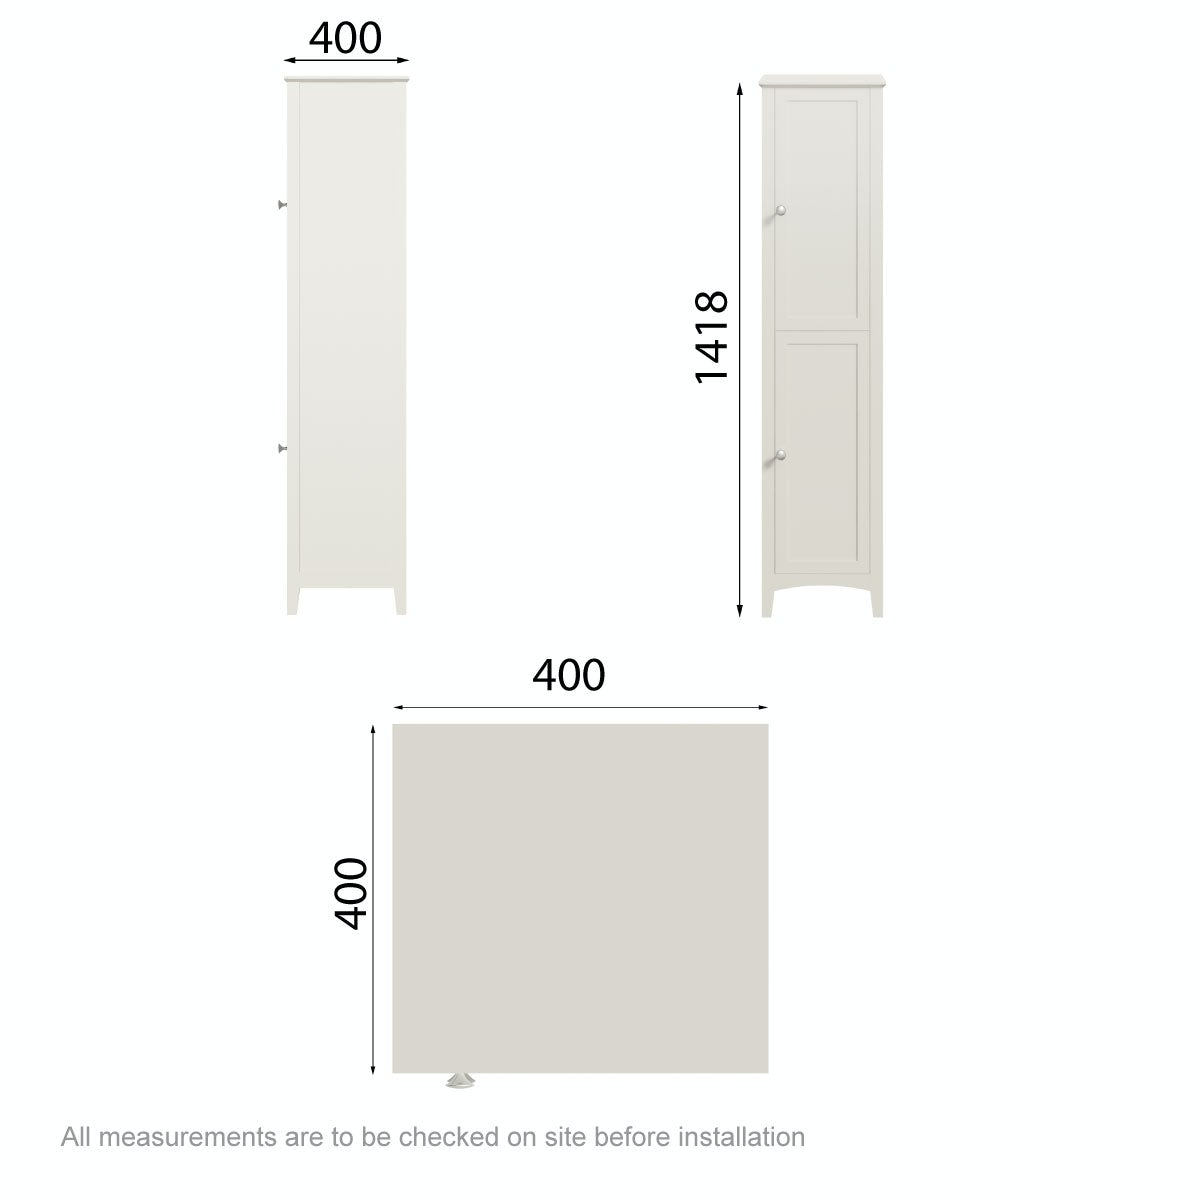 Dimensions for The Bath Co. Camberley satin ivory tall storage unit